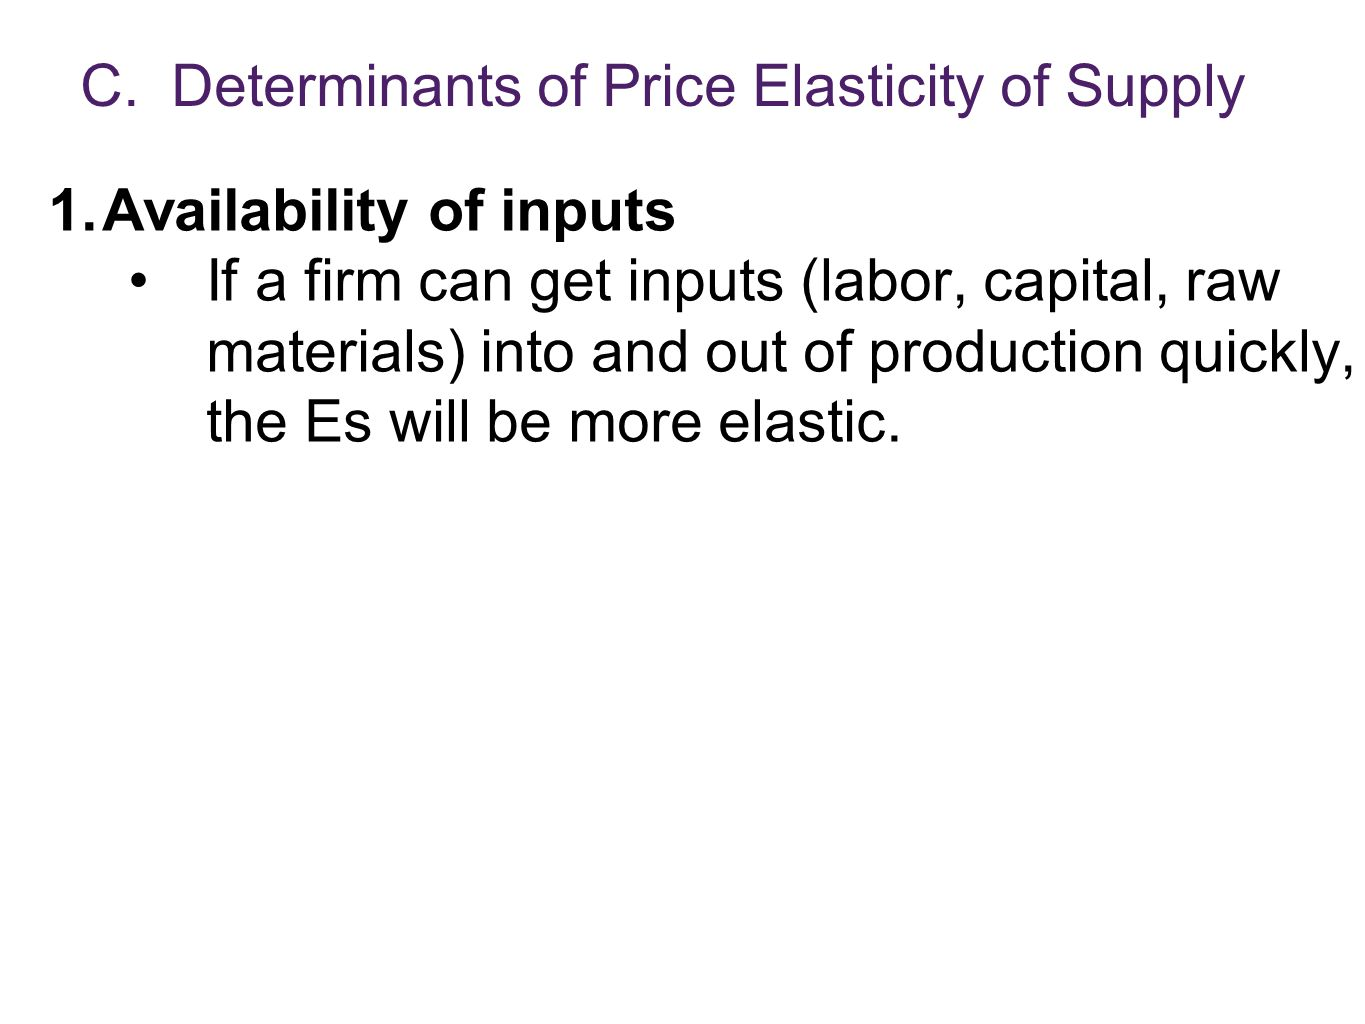 C. Determinants of Price Elasticity of Supply